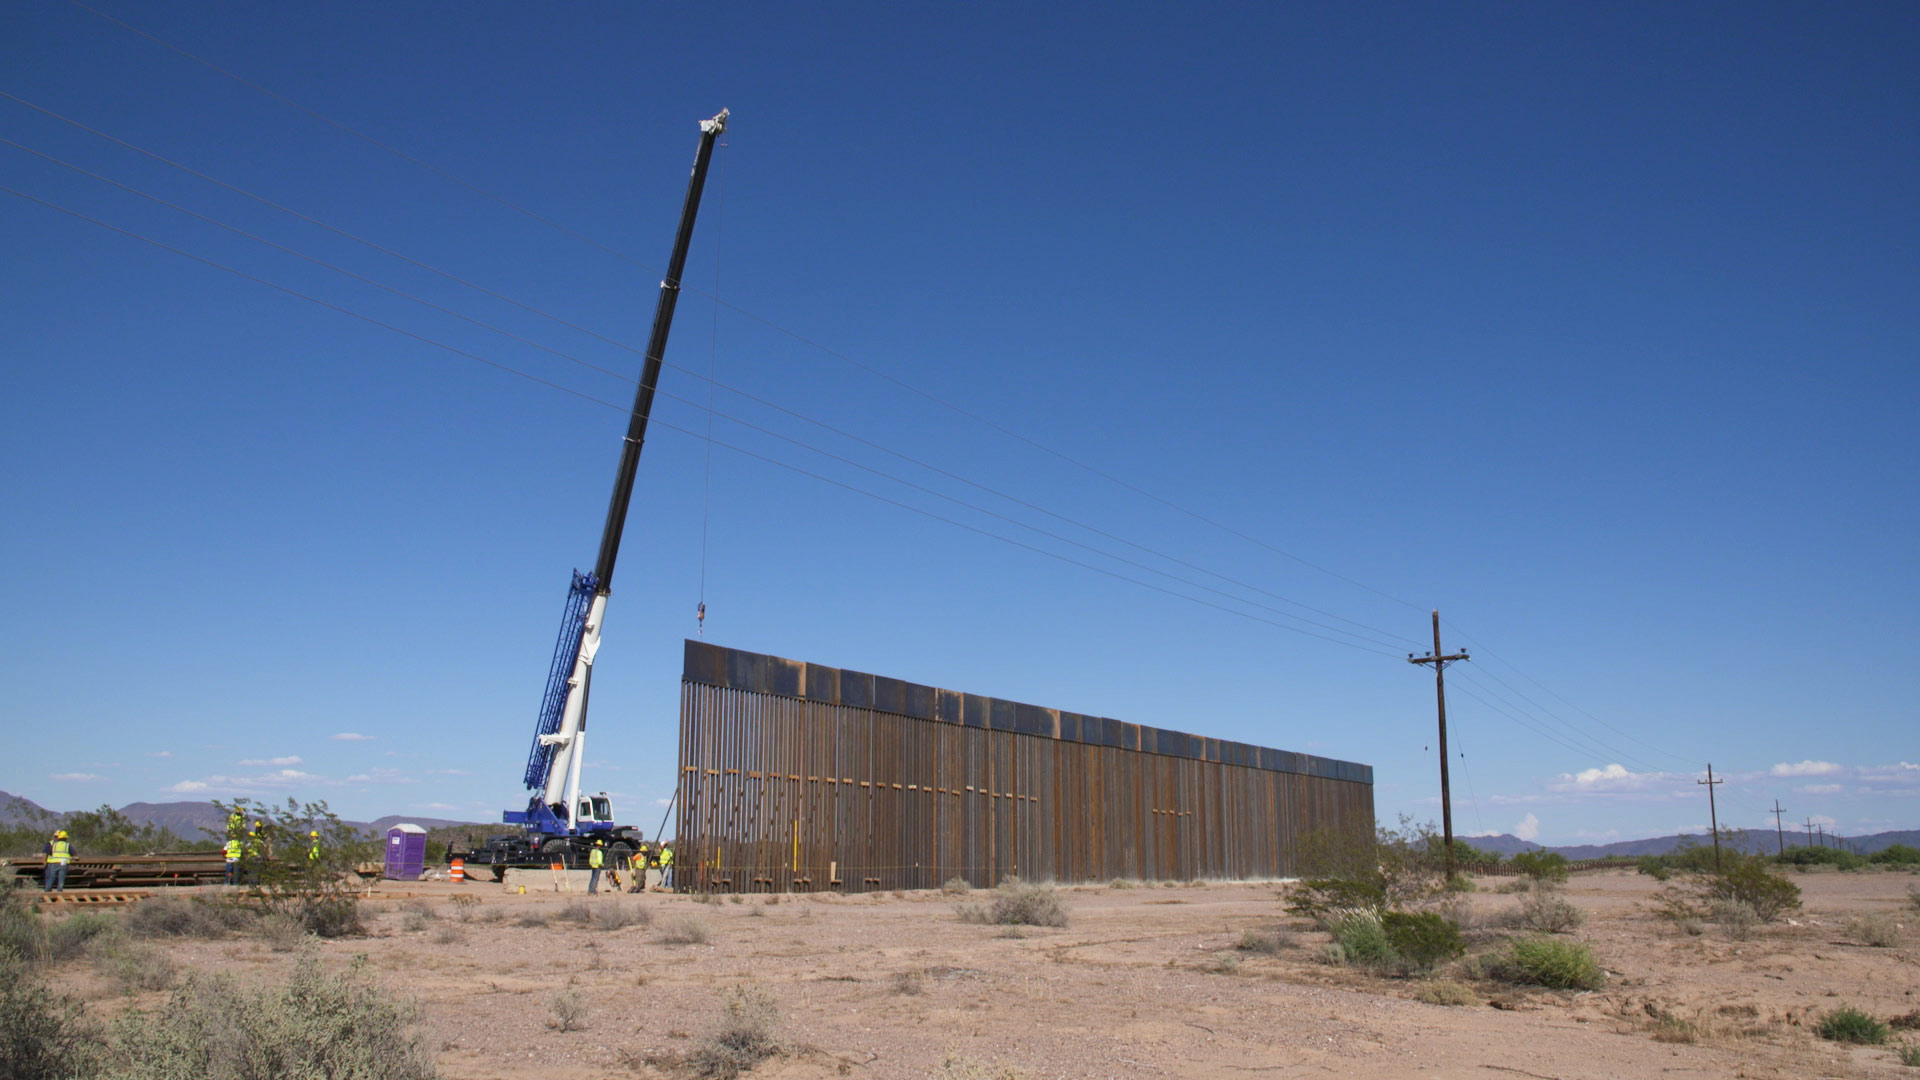 Border Wall Construction